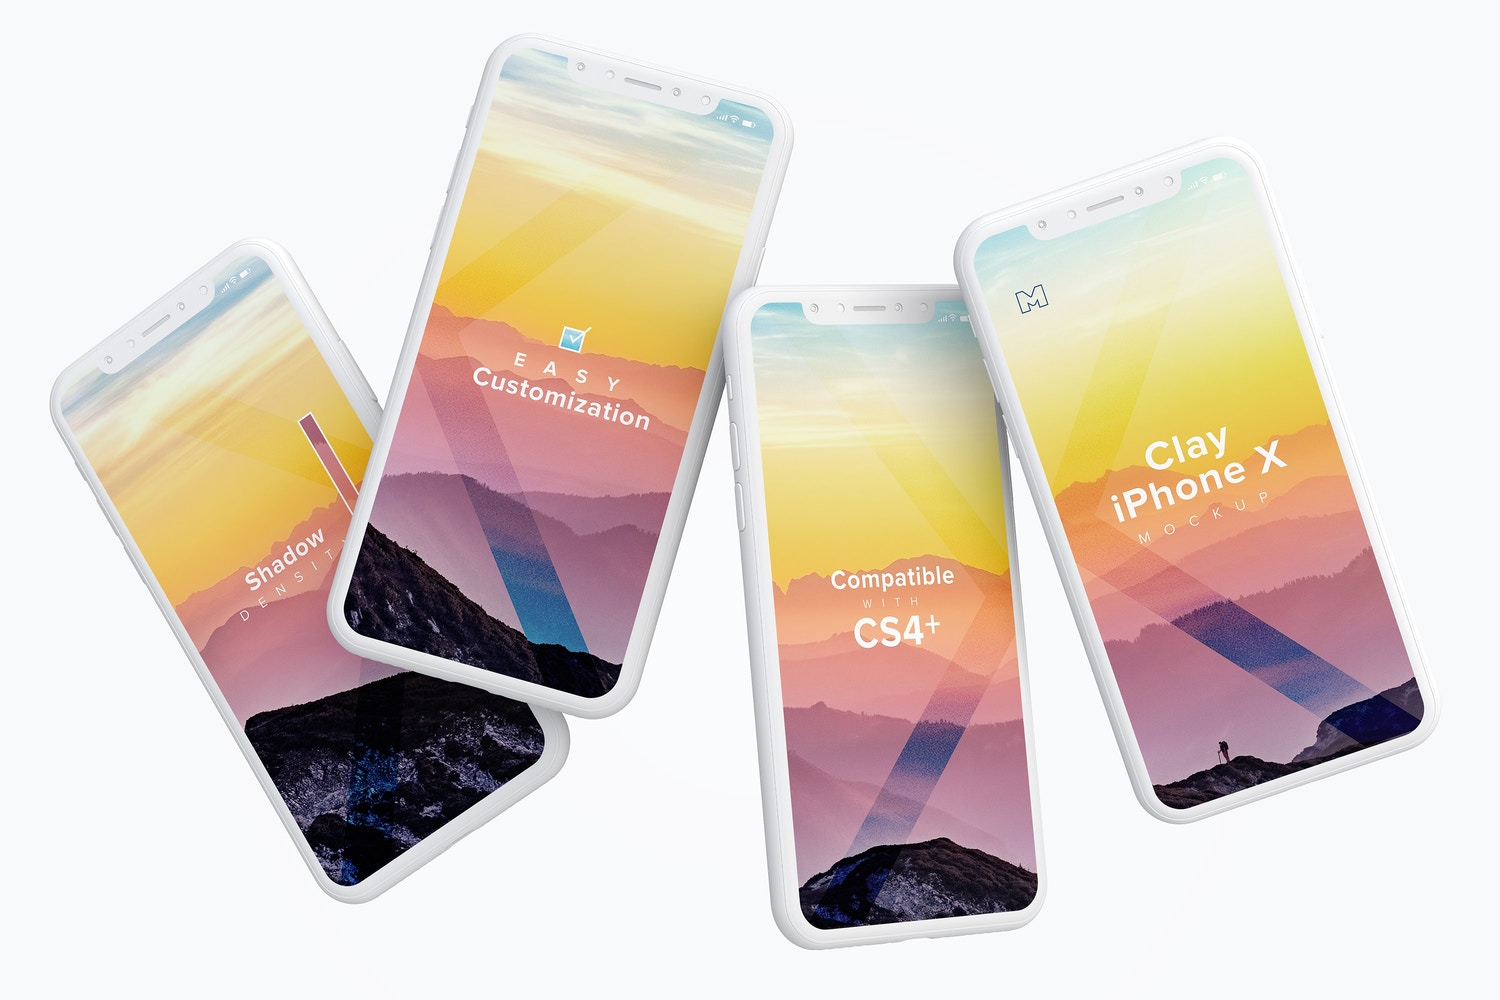 Clay iPhone X Mockup 06 by Original Mockups on Original Mockups